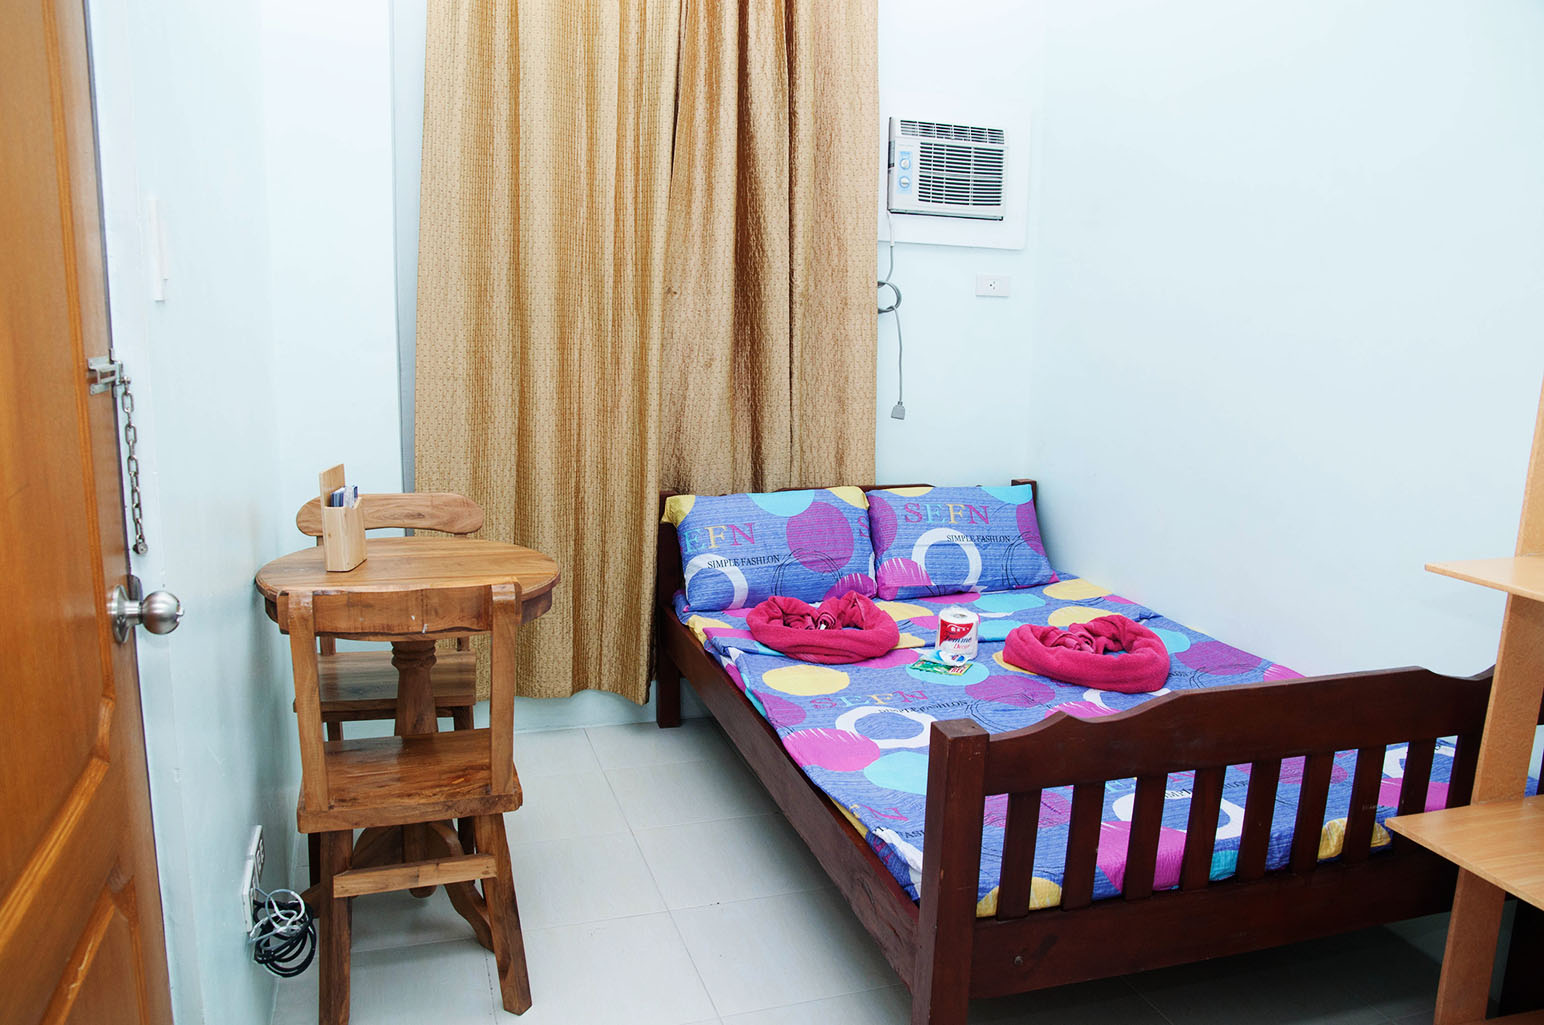 www.rooms498.com Bedspace,Accommodation, Apartelle, lodging in Manila, room for rent, budget apartelle,inn, Daily monthly Rental.